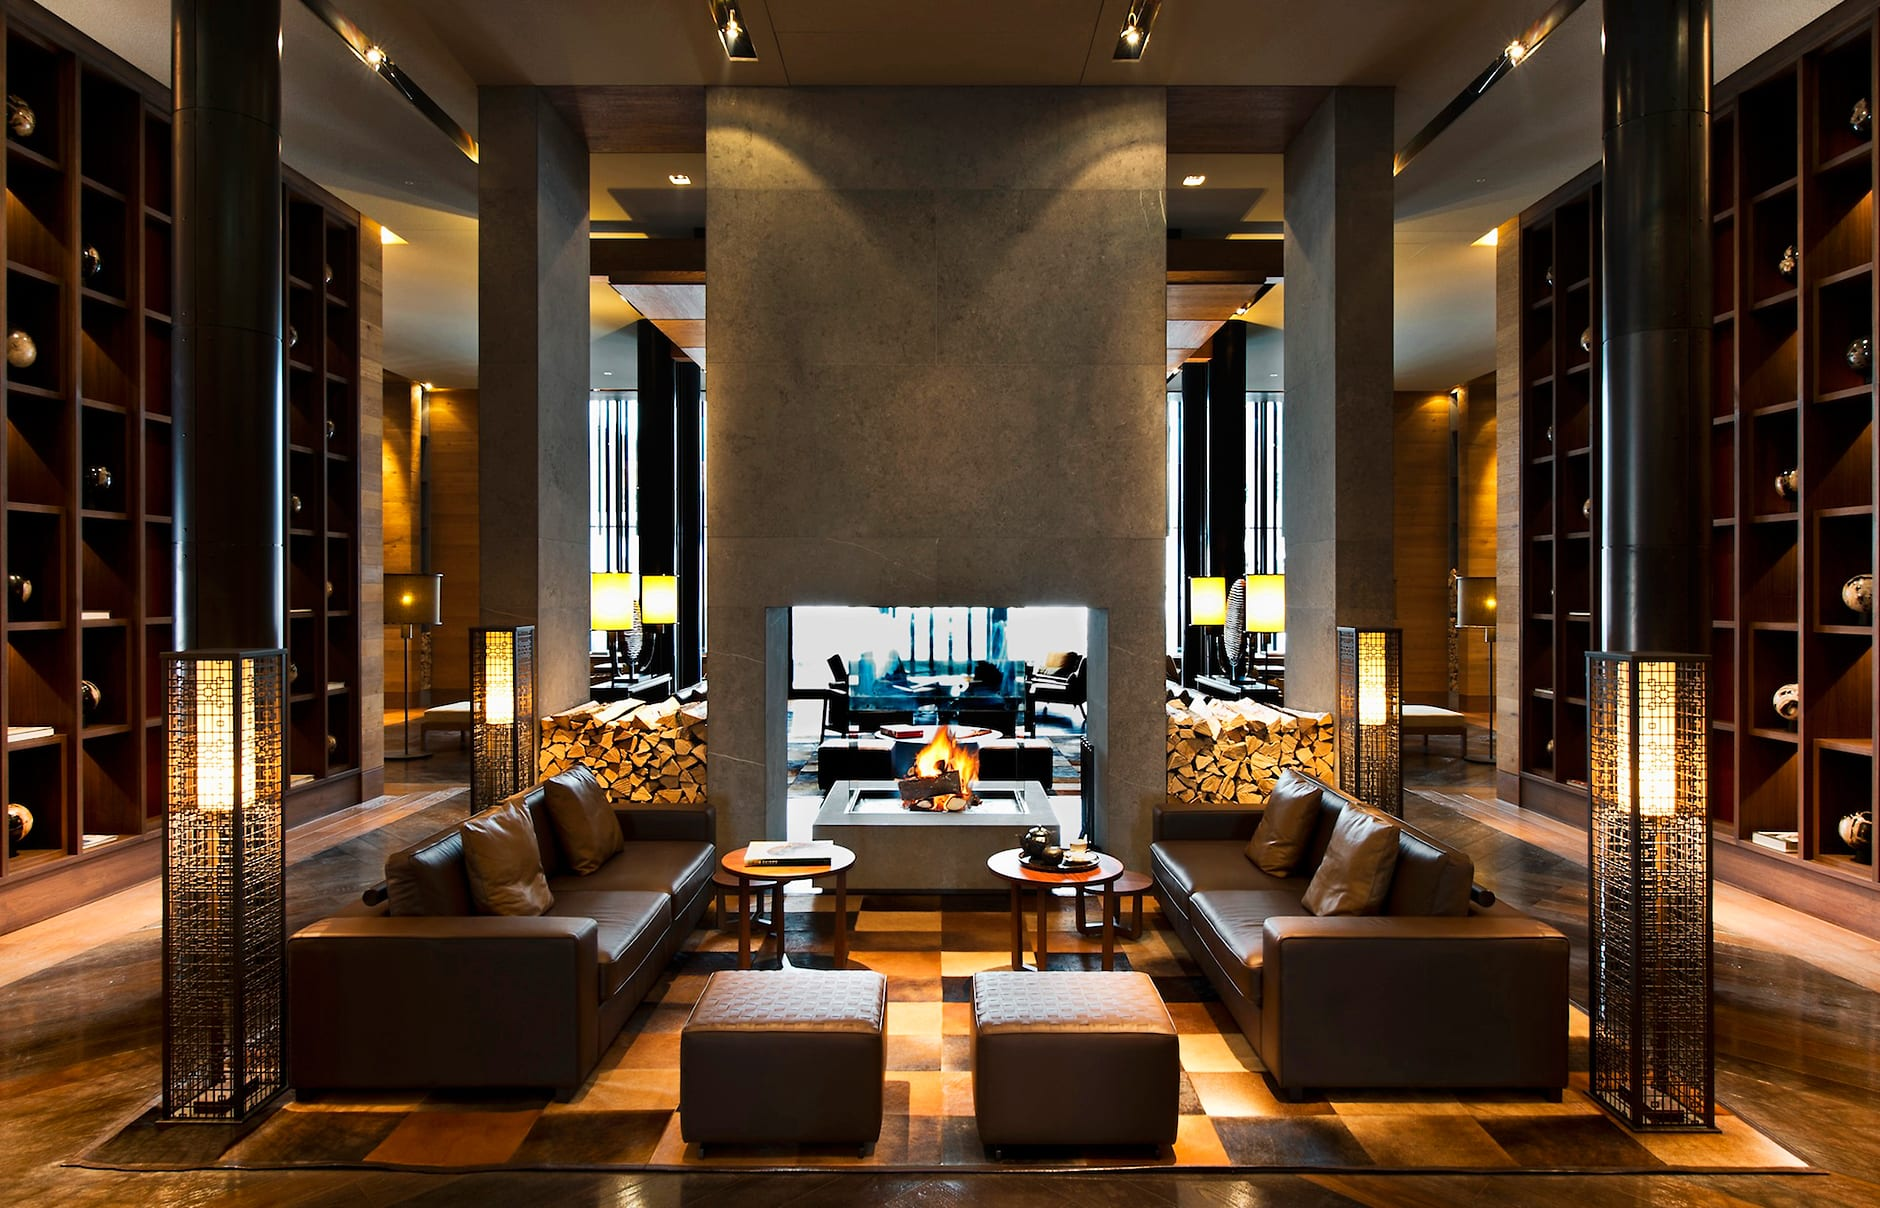 The chedi andermatt luxury hotels travelplusstyle for Hotel design schweiz